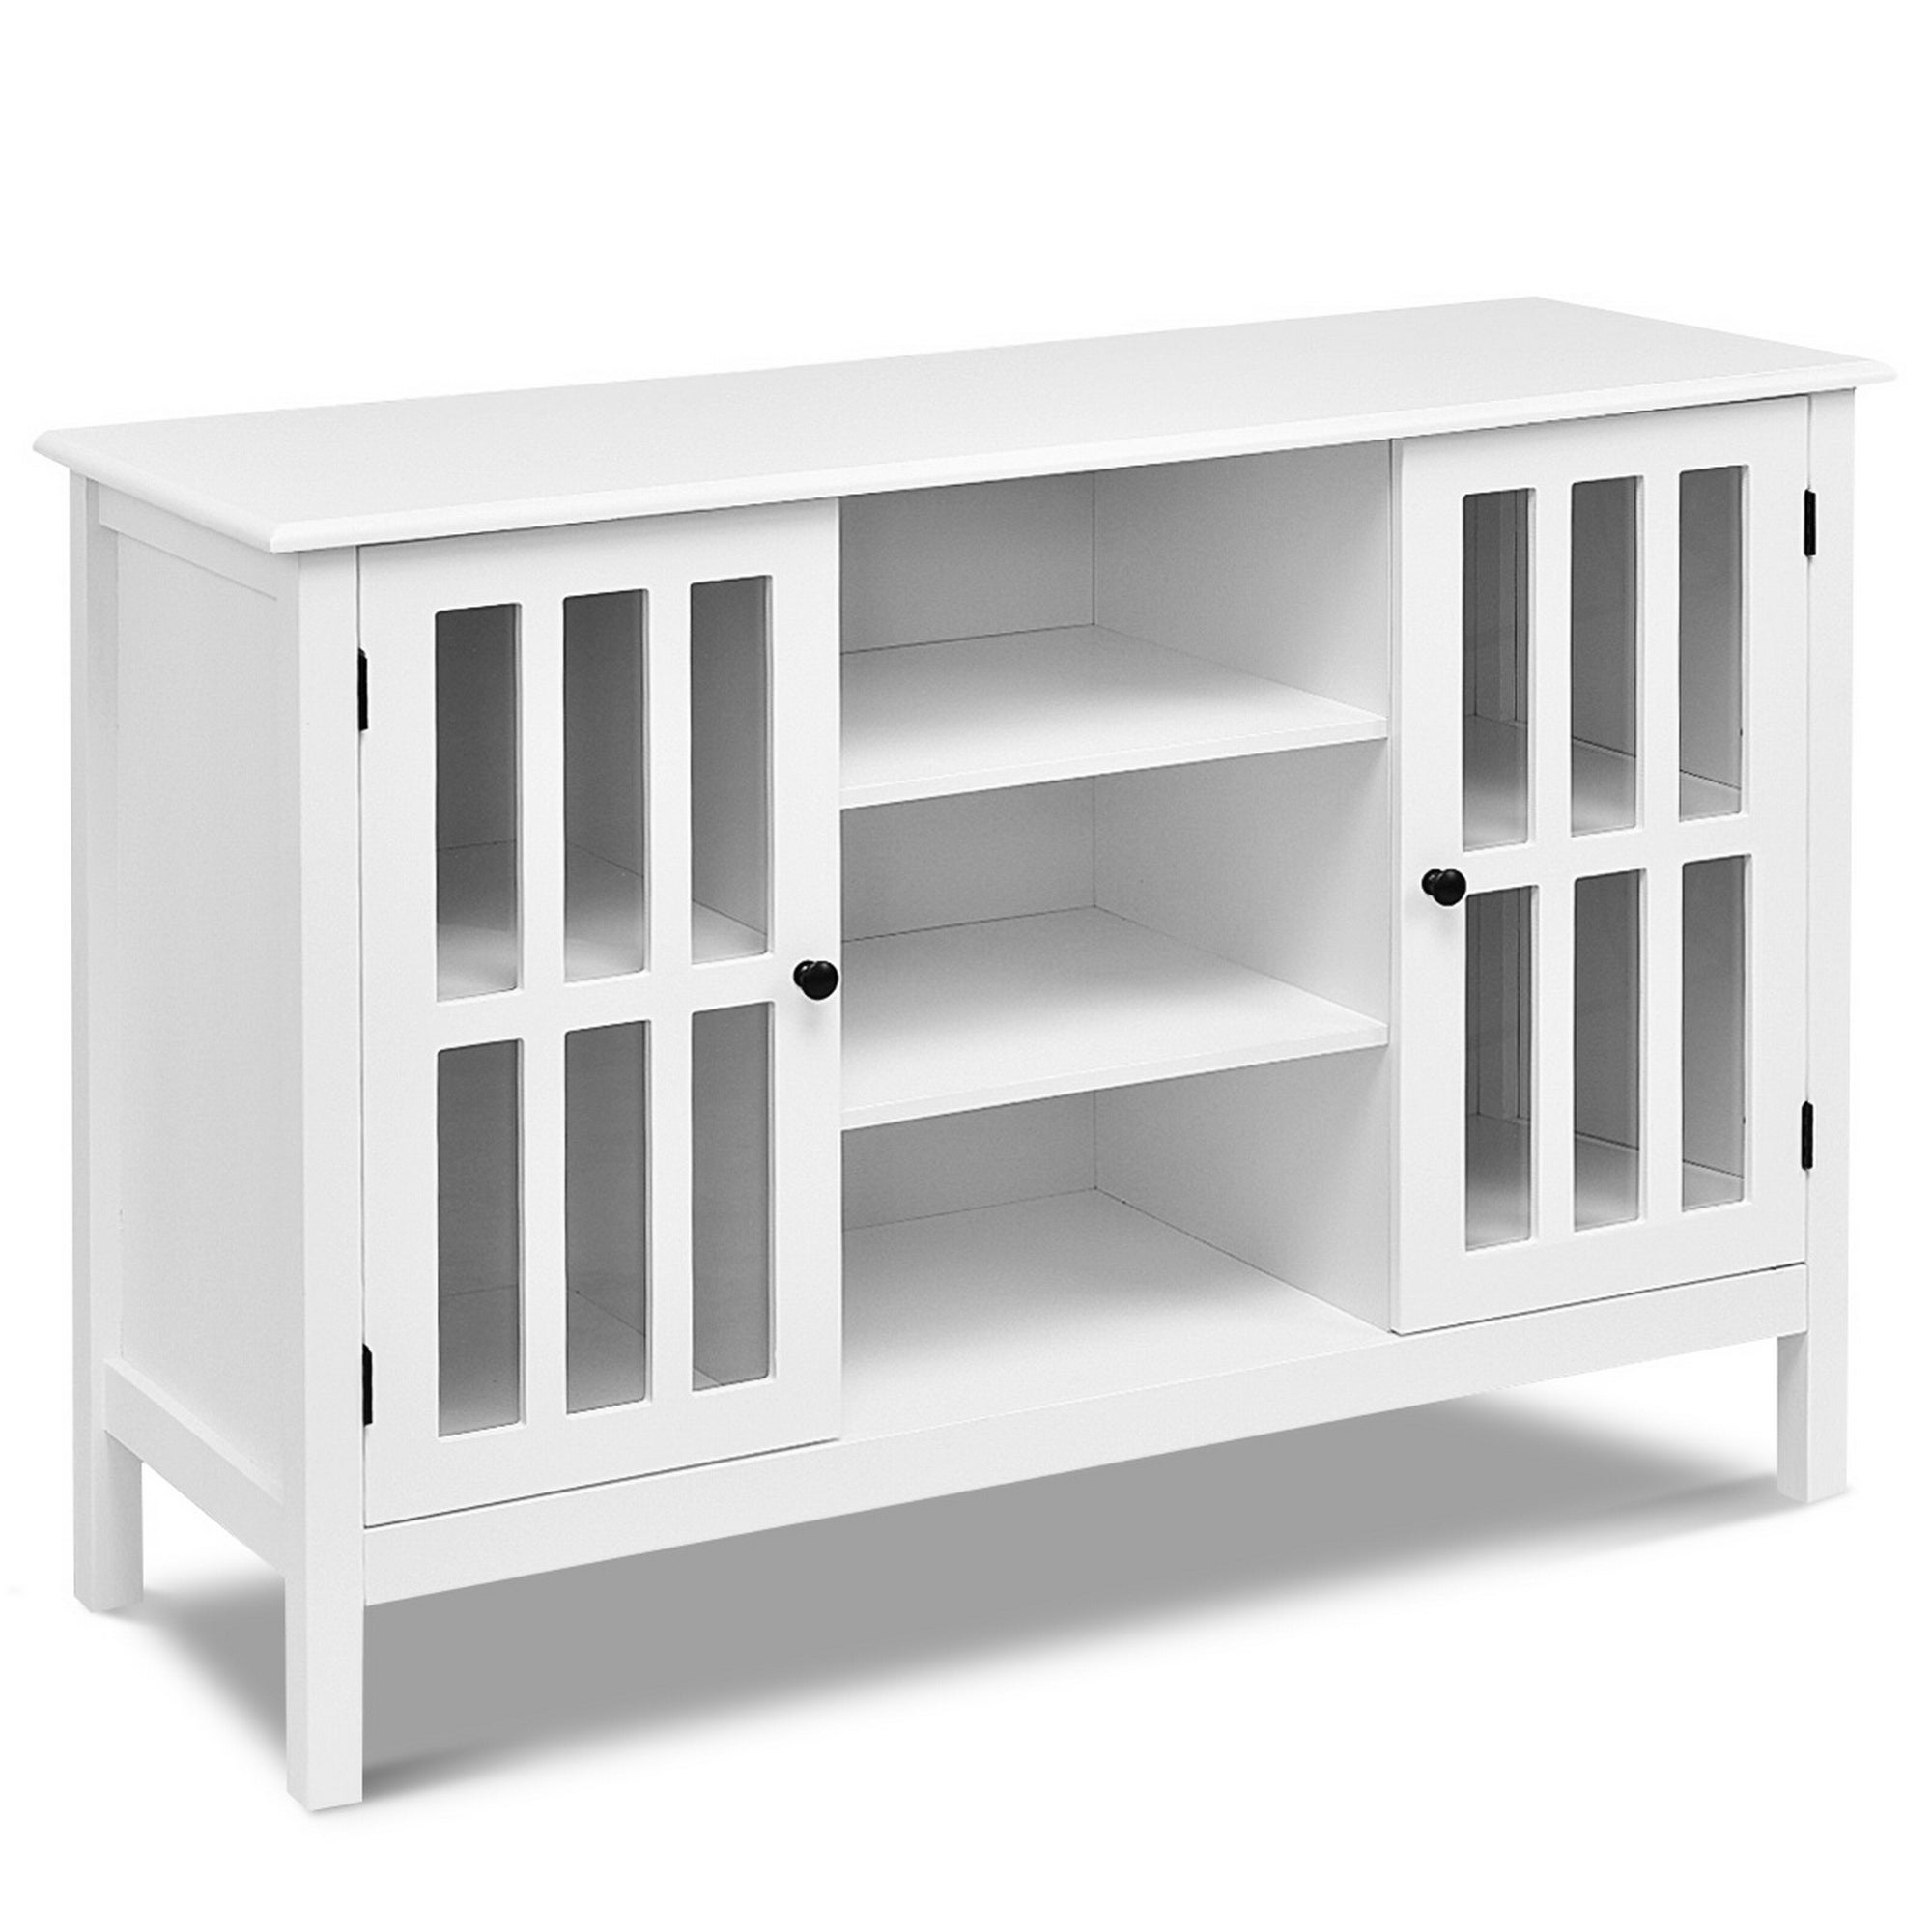 Shop Wood Tv Stand Free Standing Storage Console Cabinet For 45 Tv White Overstock 31491617